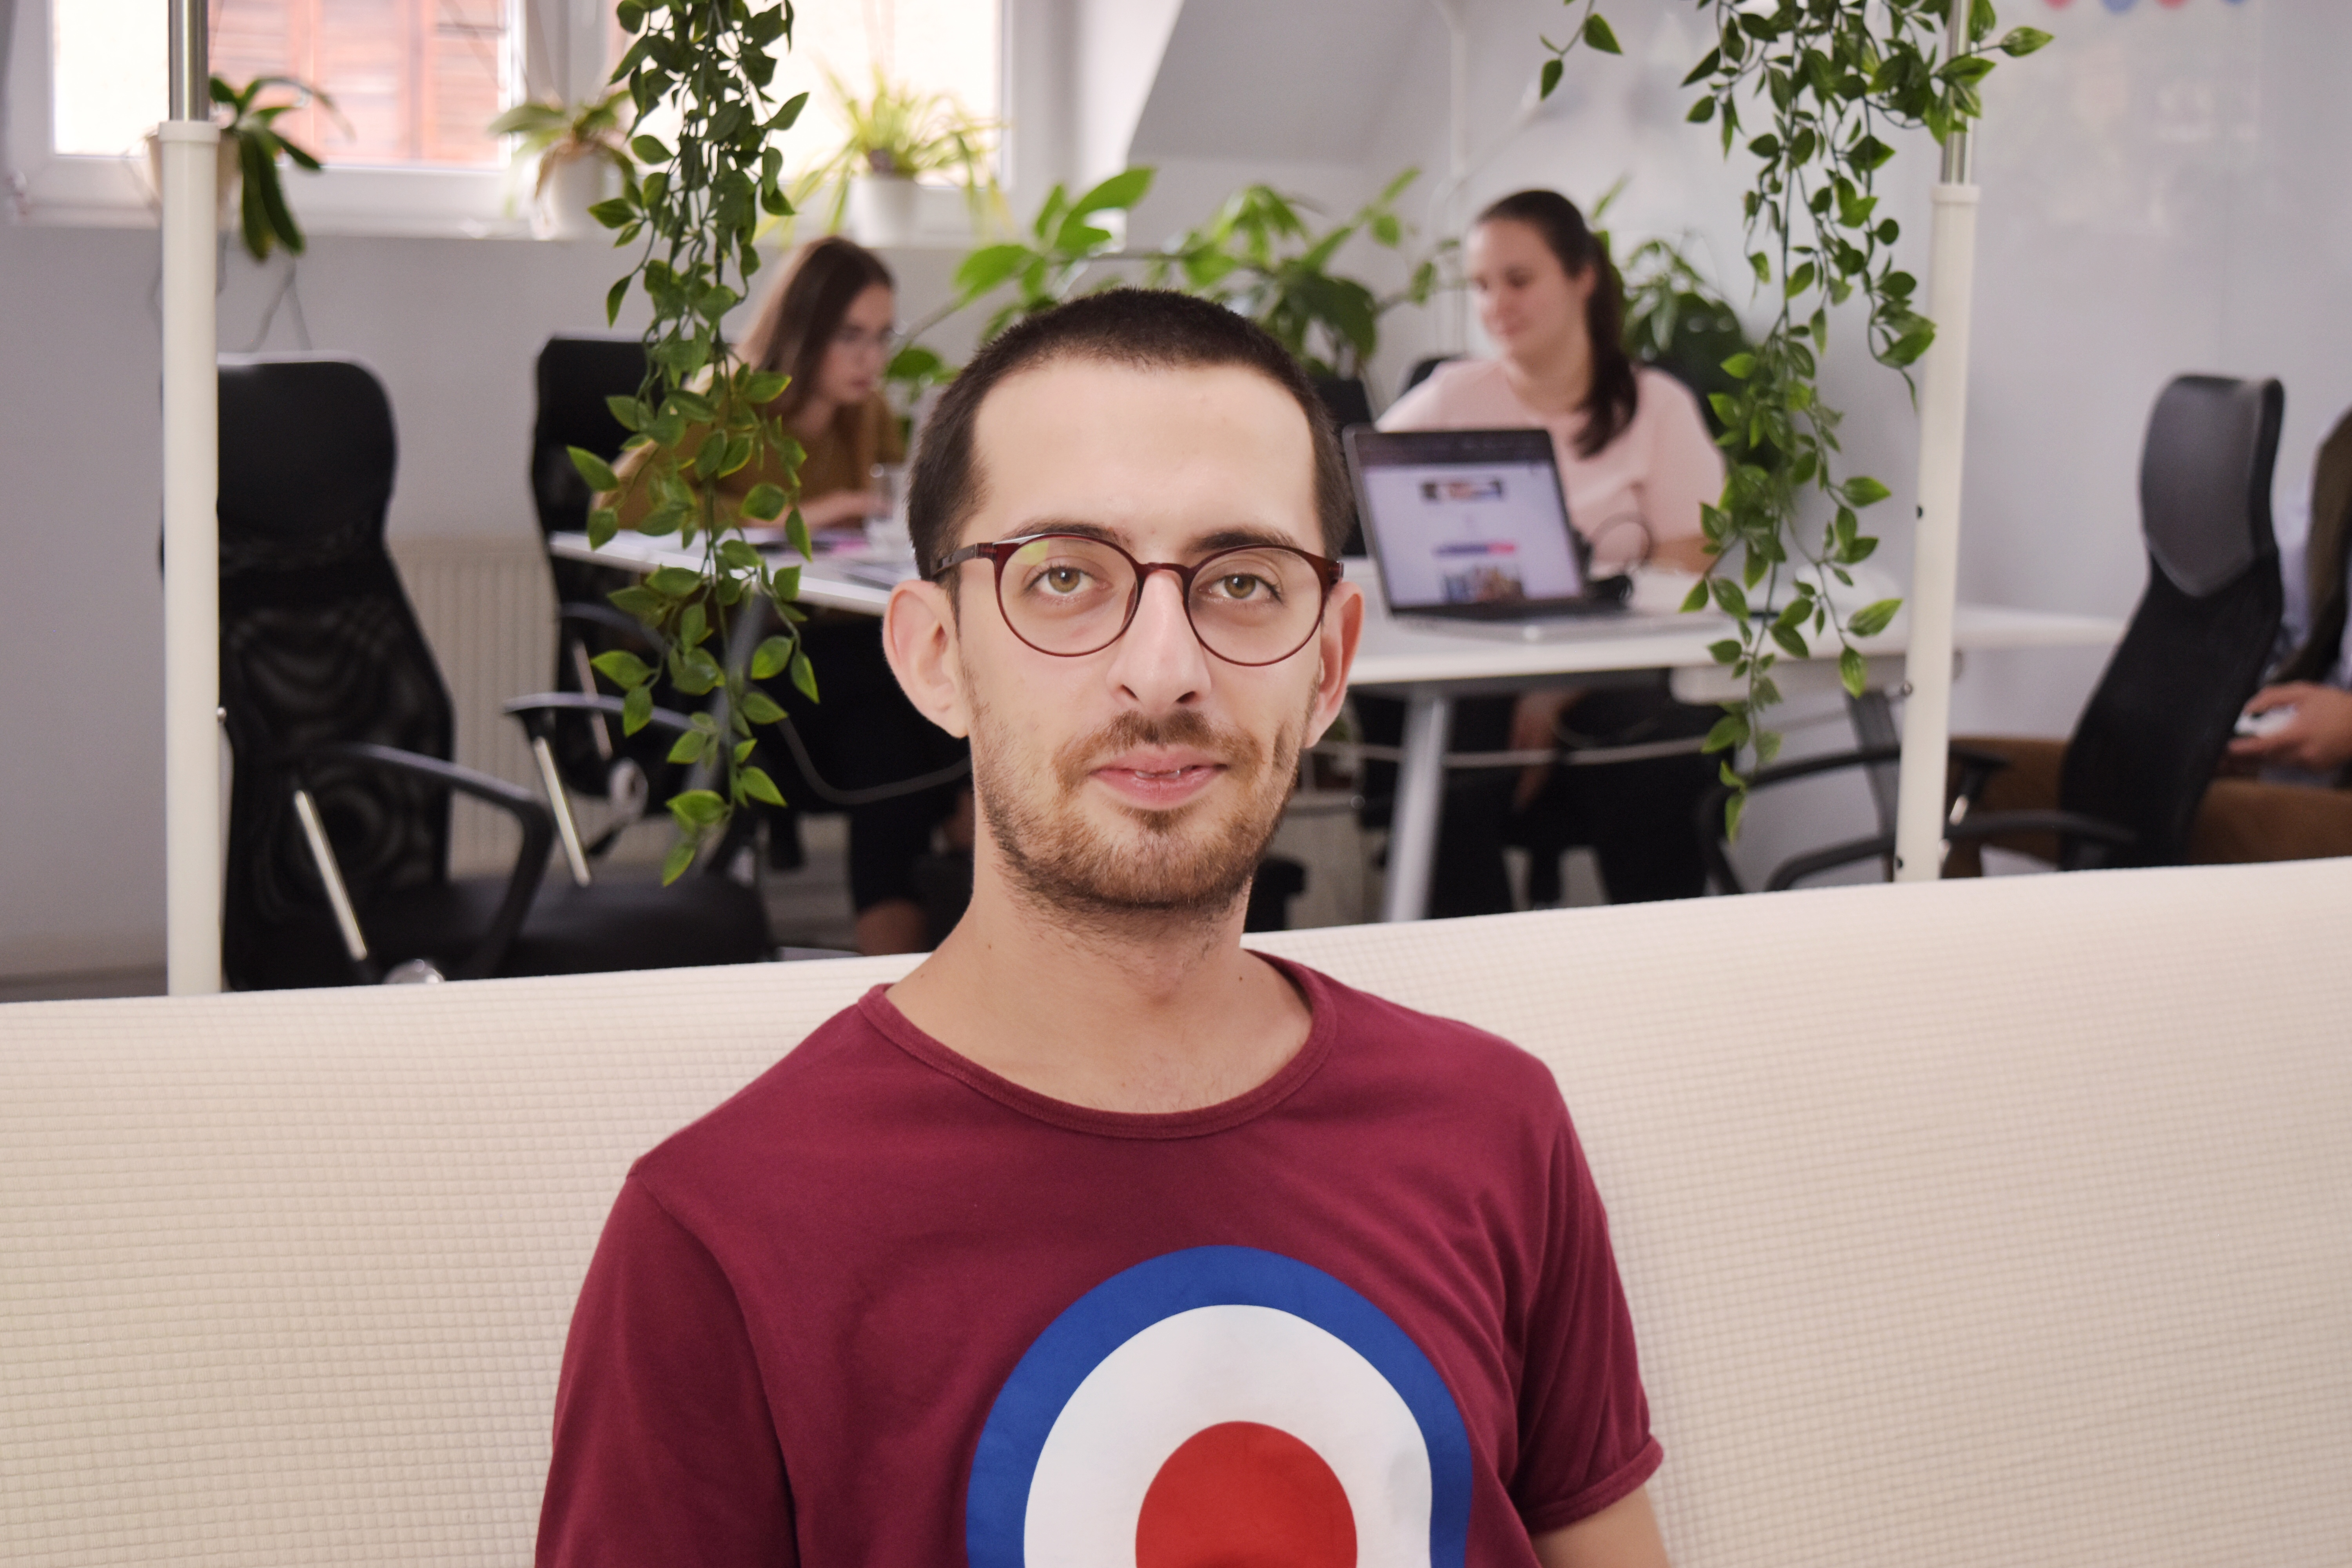 Meet Codrin, our Video Content Architect